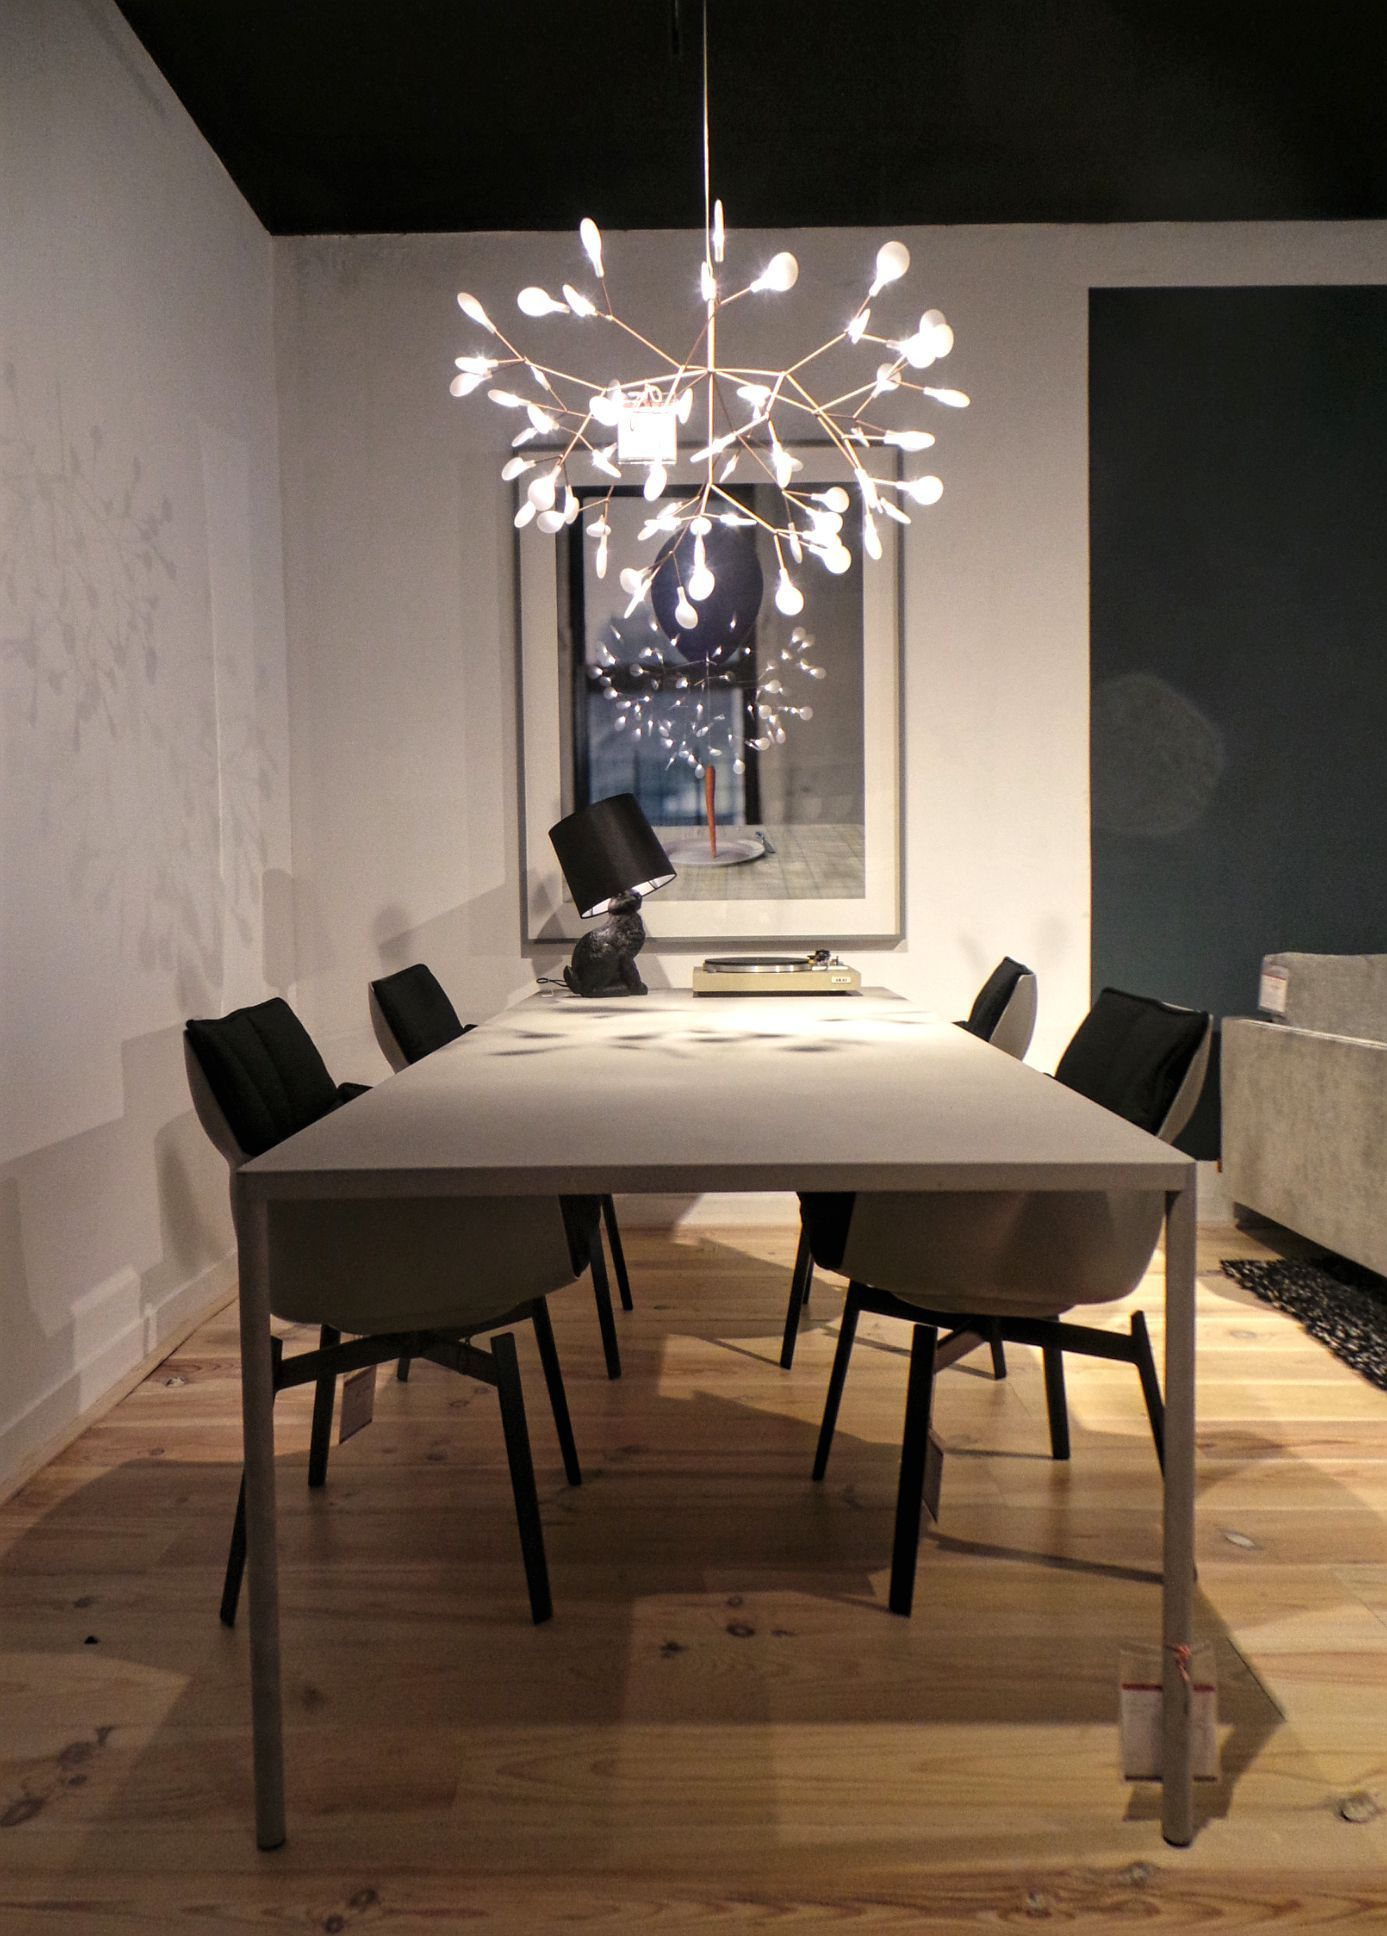 Dinner Table Lighting Ideas B Andb Italia Chair Mdf Table Moooi Table Lamp Moooi